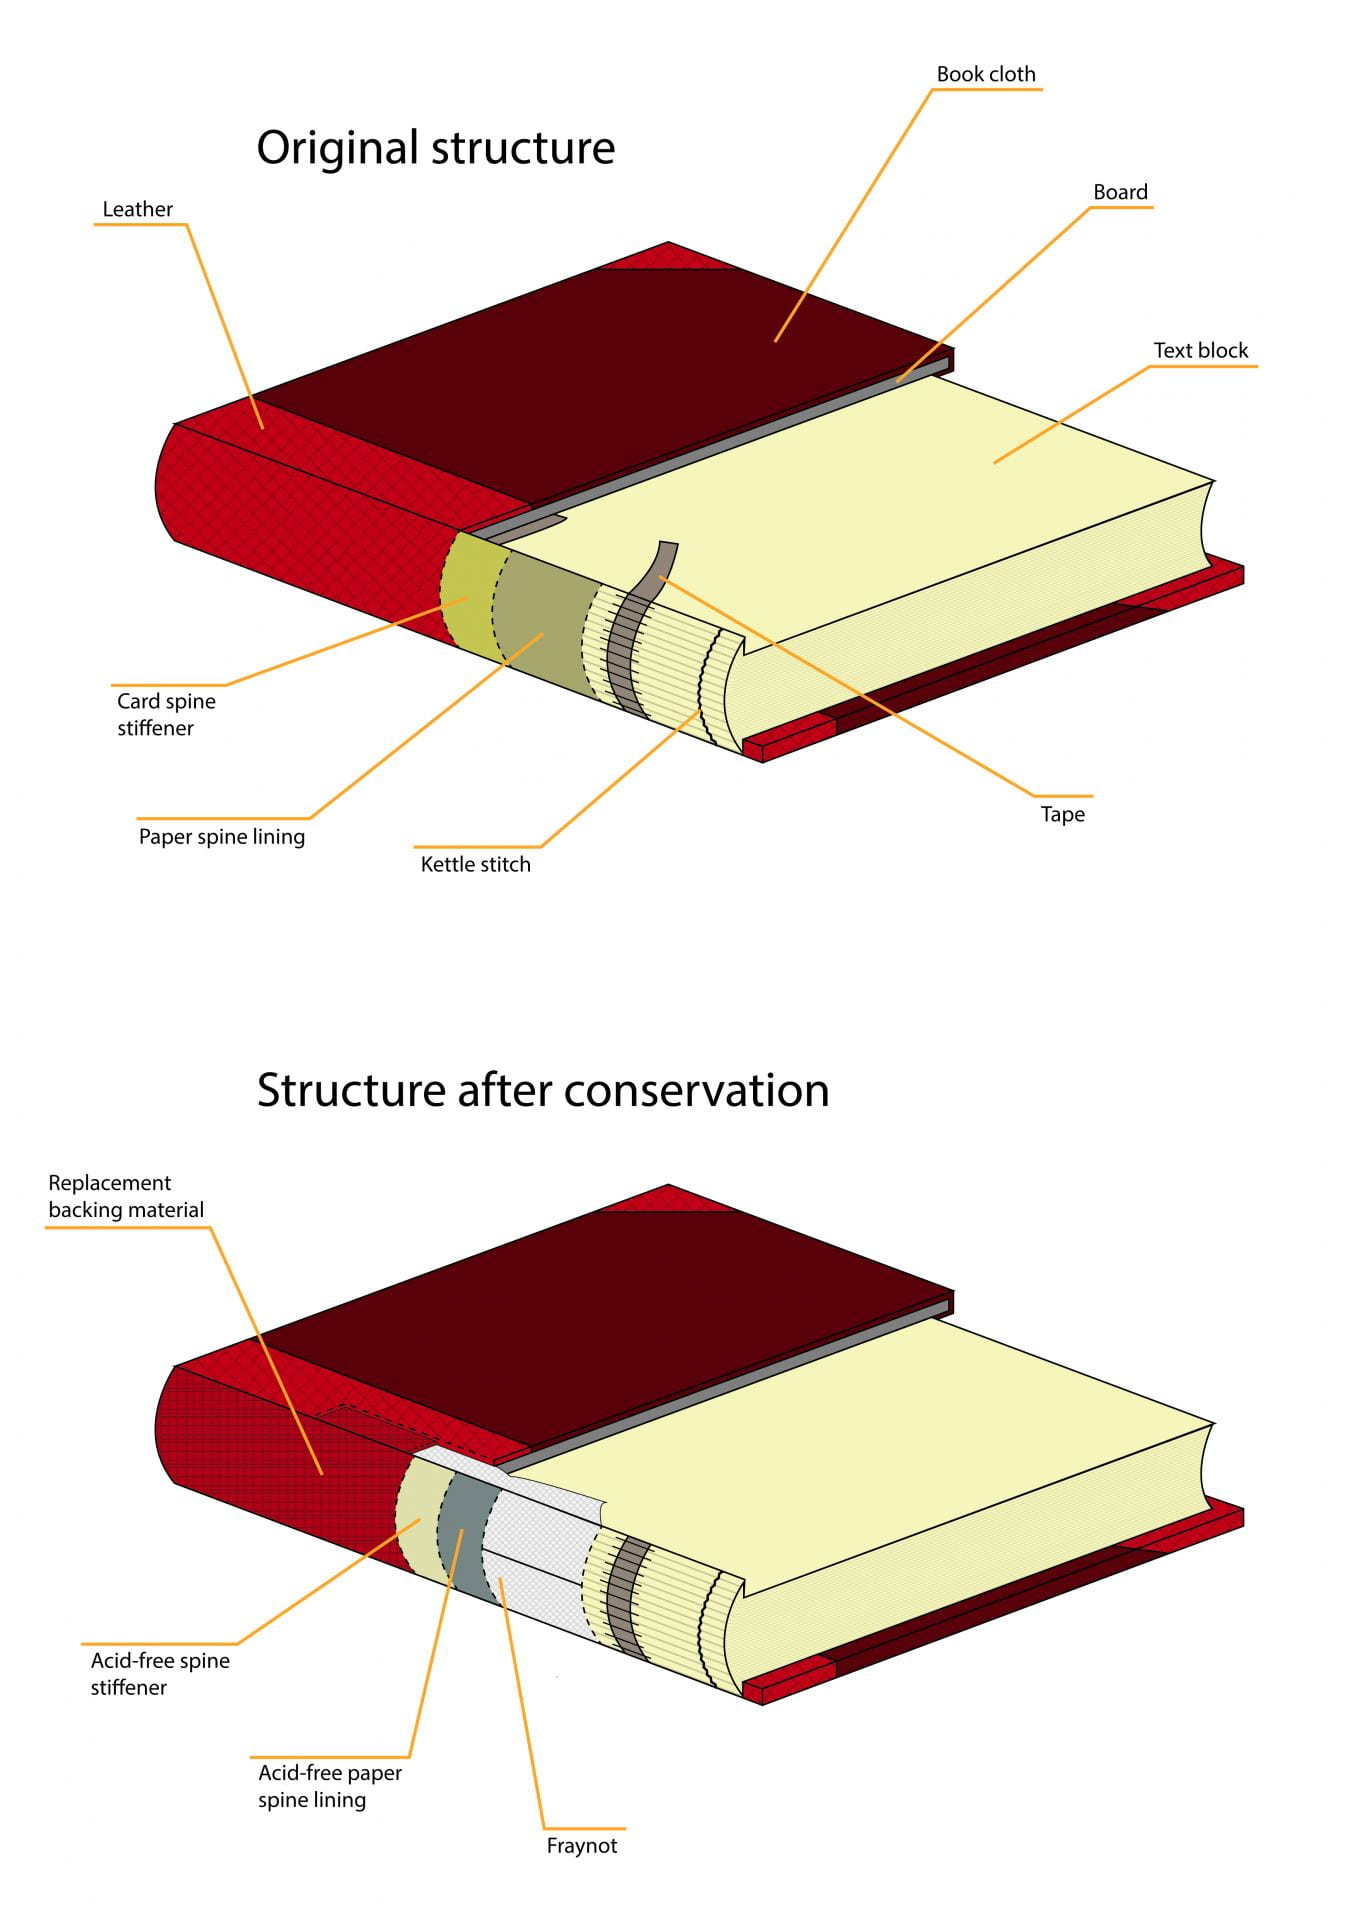 Diagrams of a 19th century book, showing the structure of the binding before and after conservation treatment.